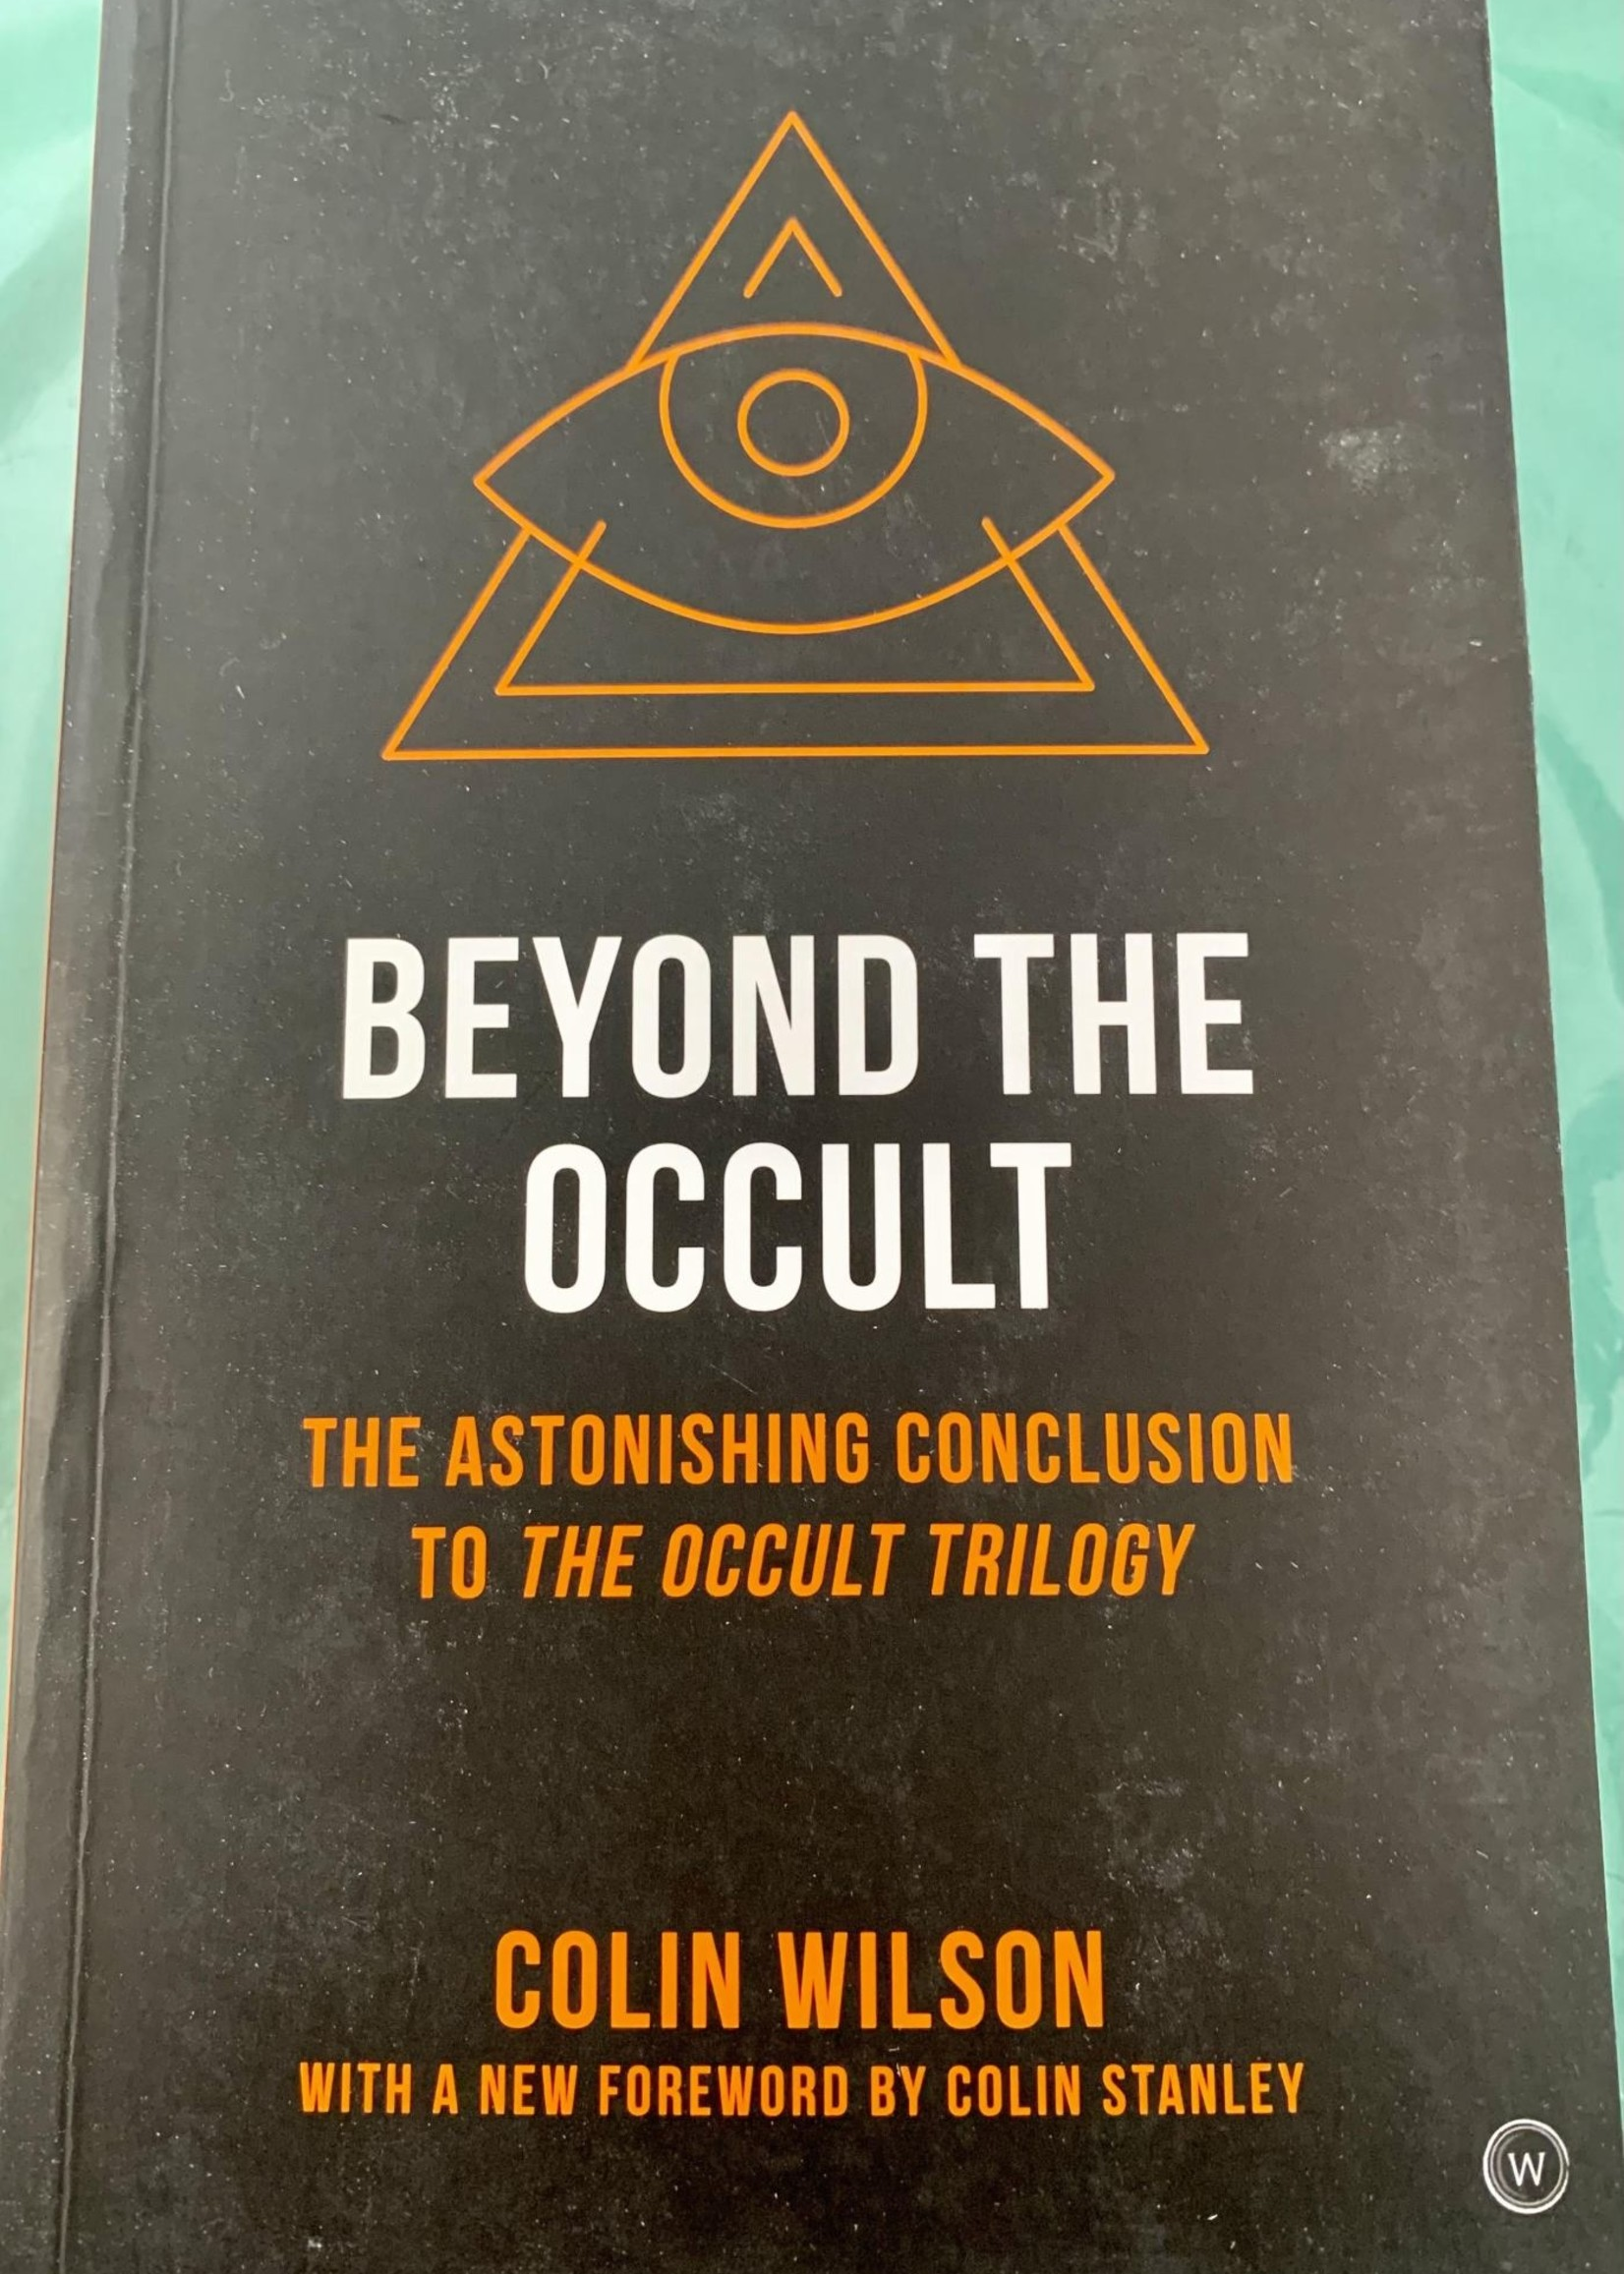 Beyond the Occult THE ASTONISHING CONCLUSION TO THE OCCULT TRILOGY - By COLIN WILSON